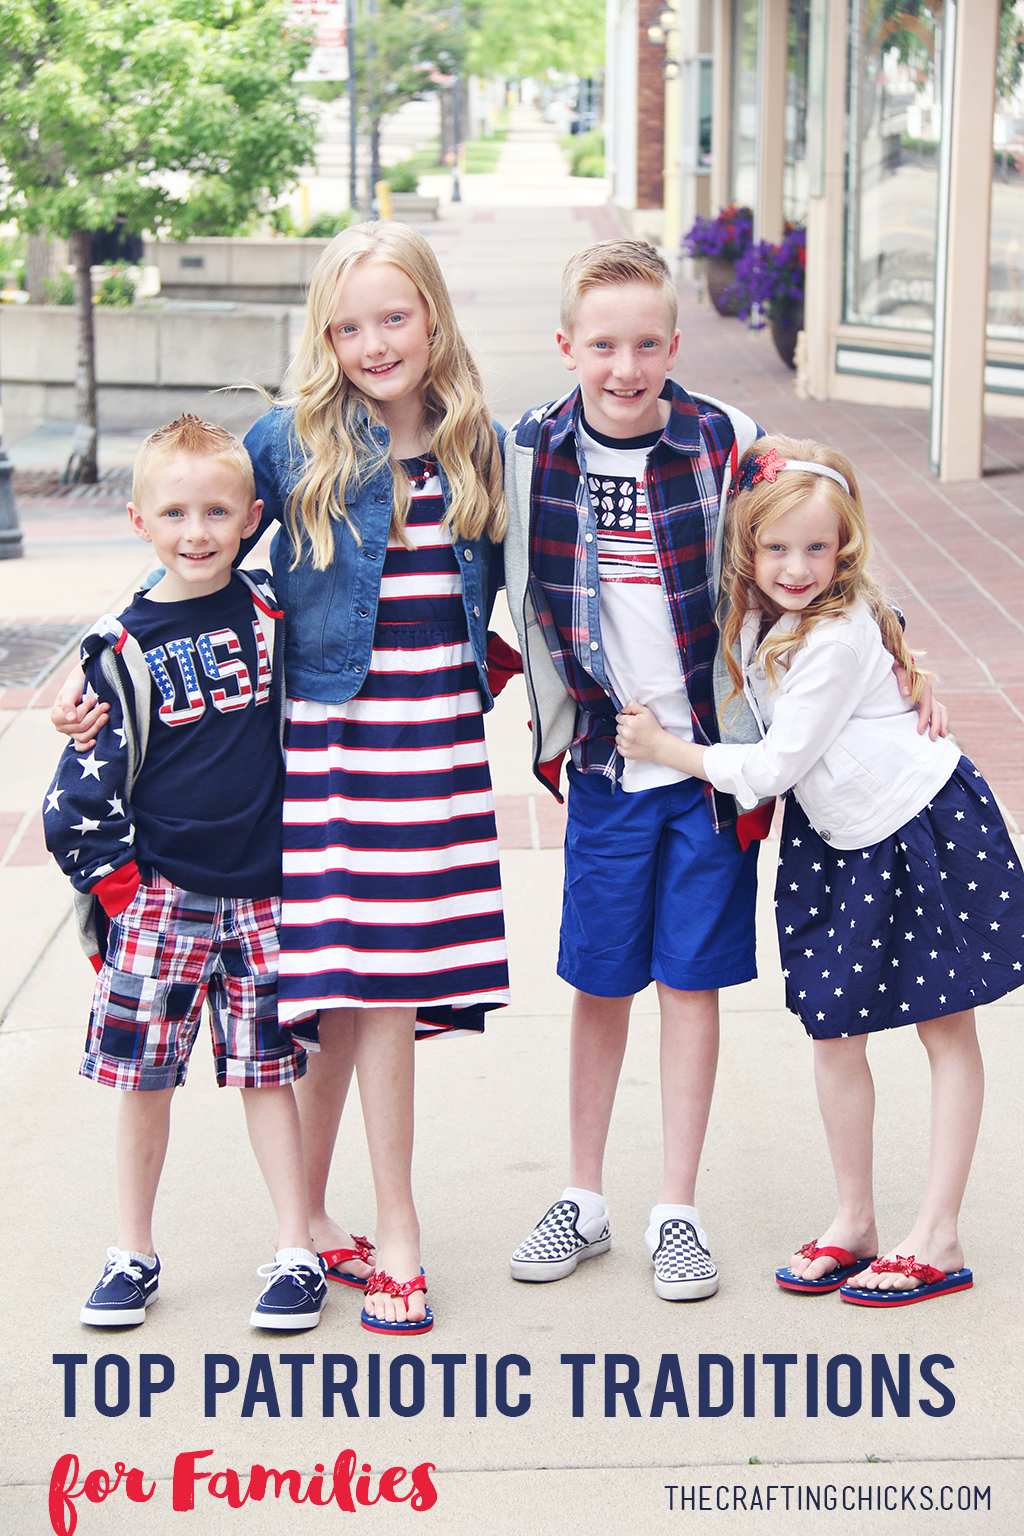 Top Patriotic Traditions for Families